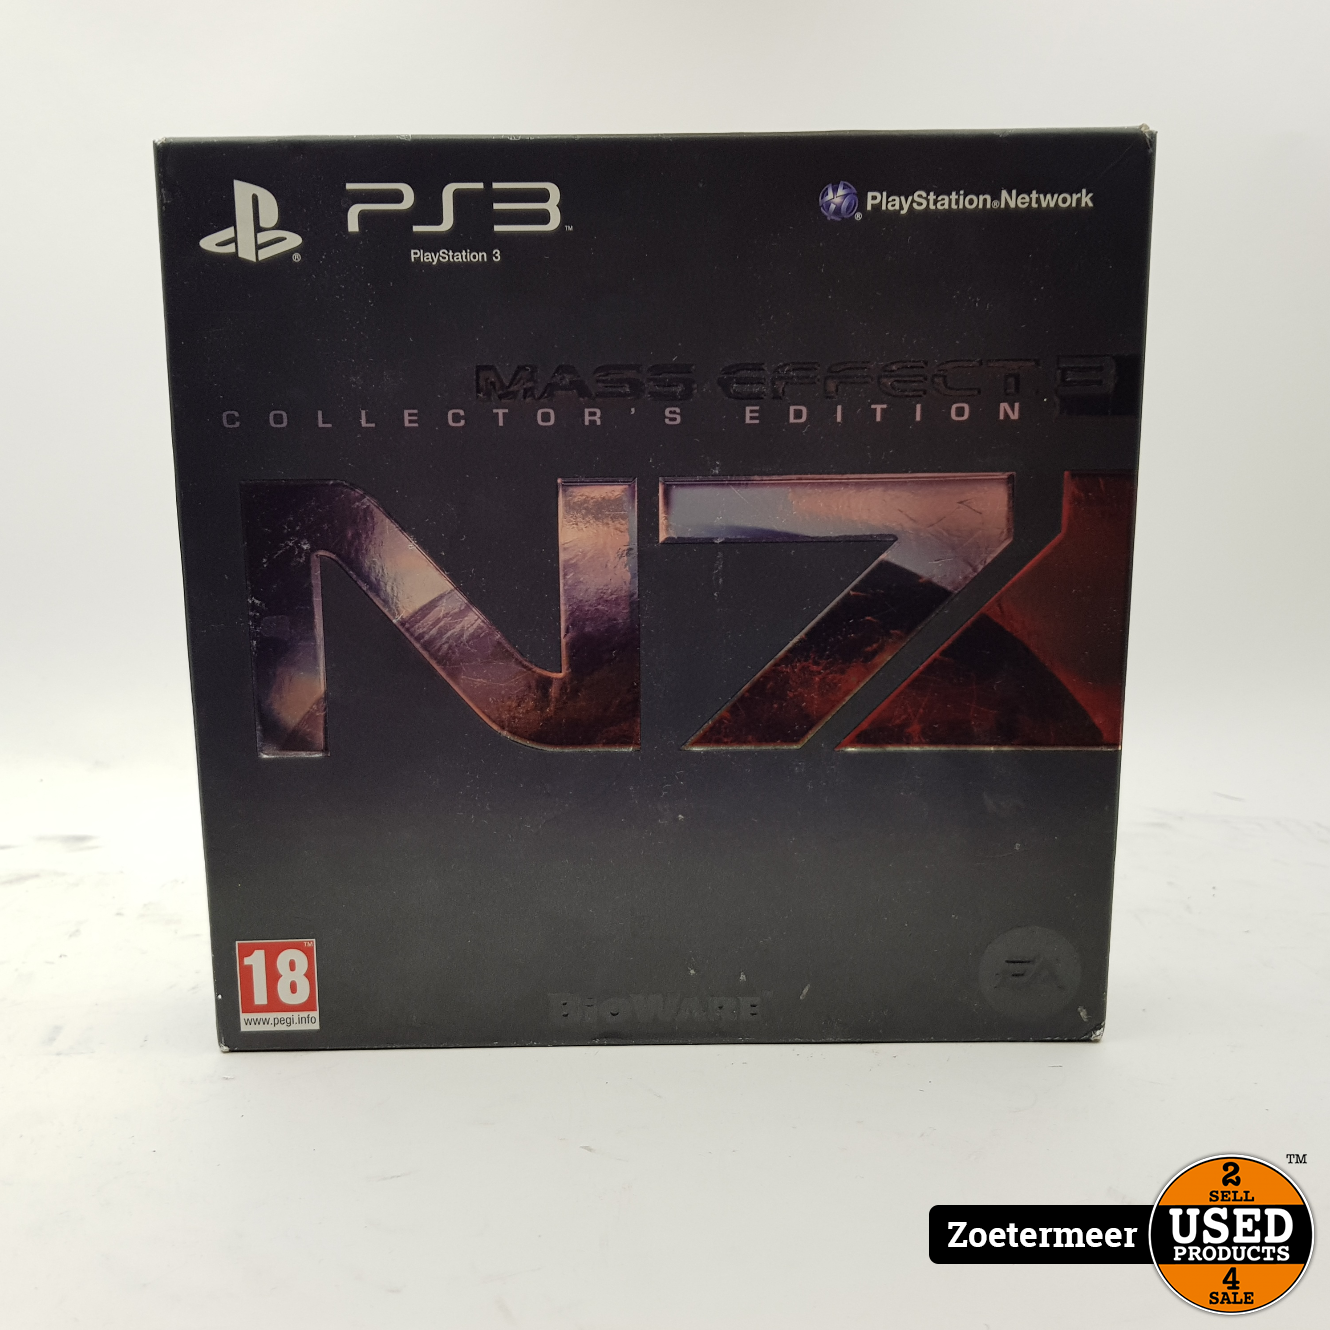 Mass effect 3 collector's edition ps3 - Used Products Zoetermeer